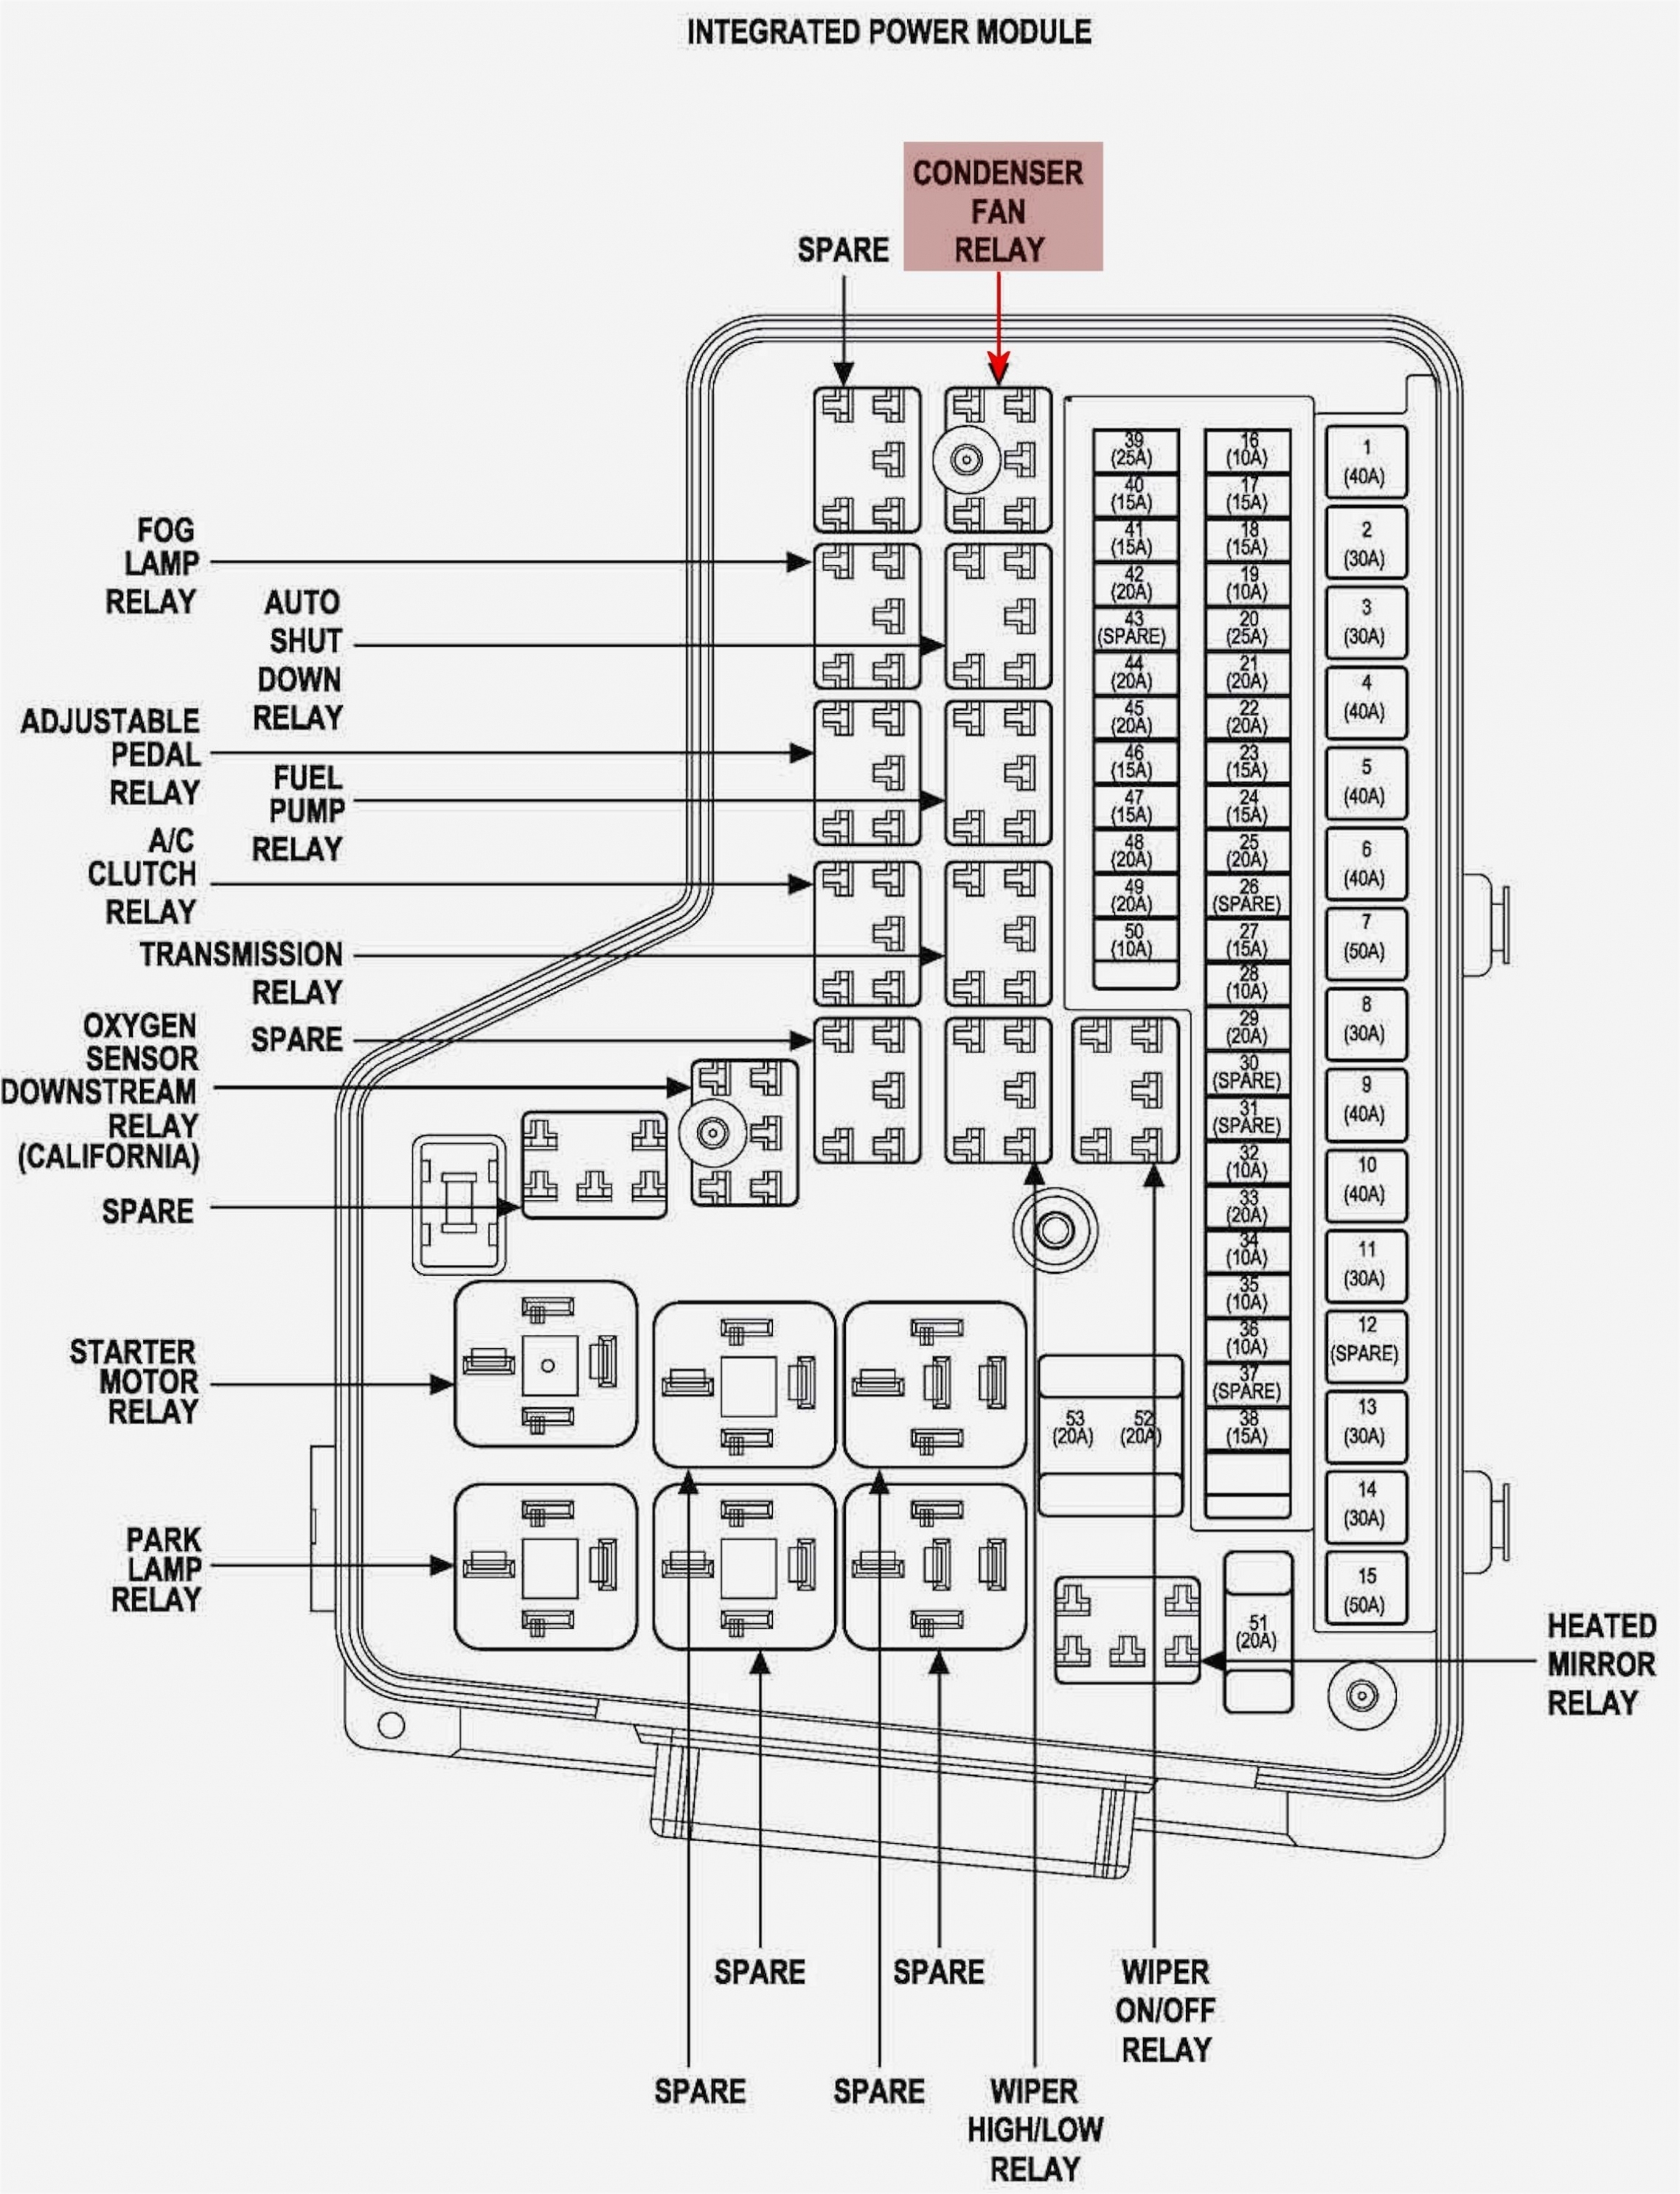 Dodge Grand Caravan Radio Wiring Diagram on 1995 dodge ram 1500 wiring diagram, 1995 gmc yukon wiring diagram, 1992 dodge caravan wiring diagram, 1995 dodge intrepid wiring diagram, 1995 gmc 3500 wiring diagram, 1995 chrysler dodge wiring diagram, 1991 dodge caravan wiring diagram, 1995 ford e350 wiring diagram, 1995 ford crown victoria wiring diagram, 1995 ford f-150 wiring diagram, 1995 chevrolet blazer wiring diagram, 1995 ford f-350 wiring diagram,